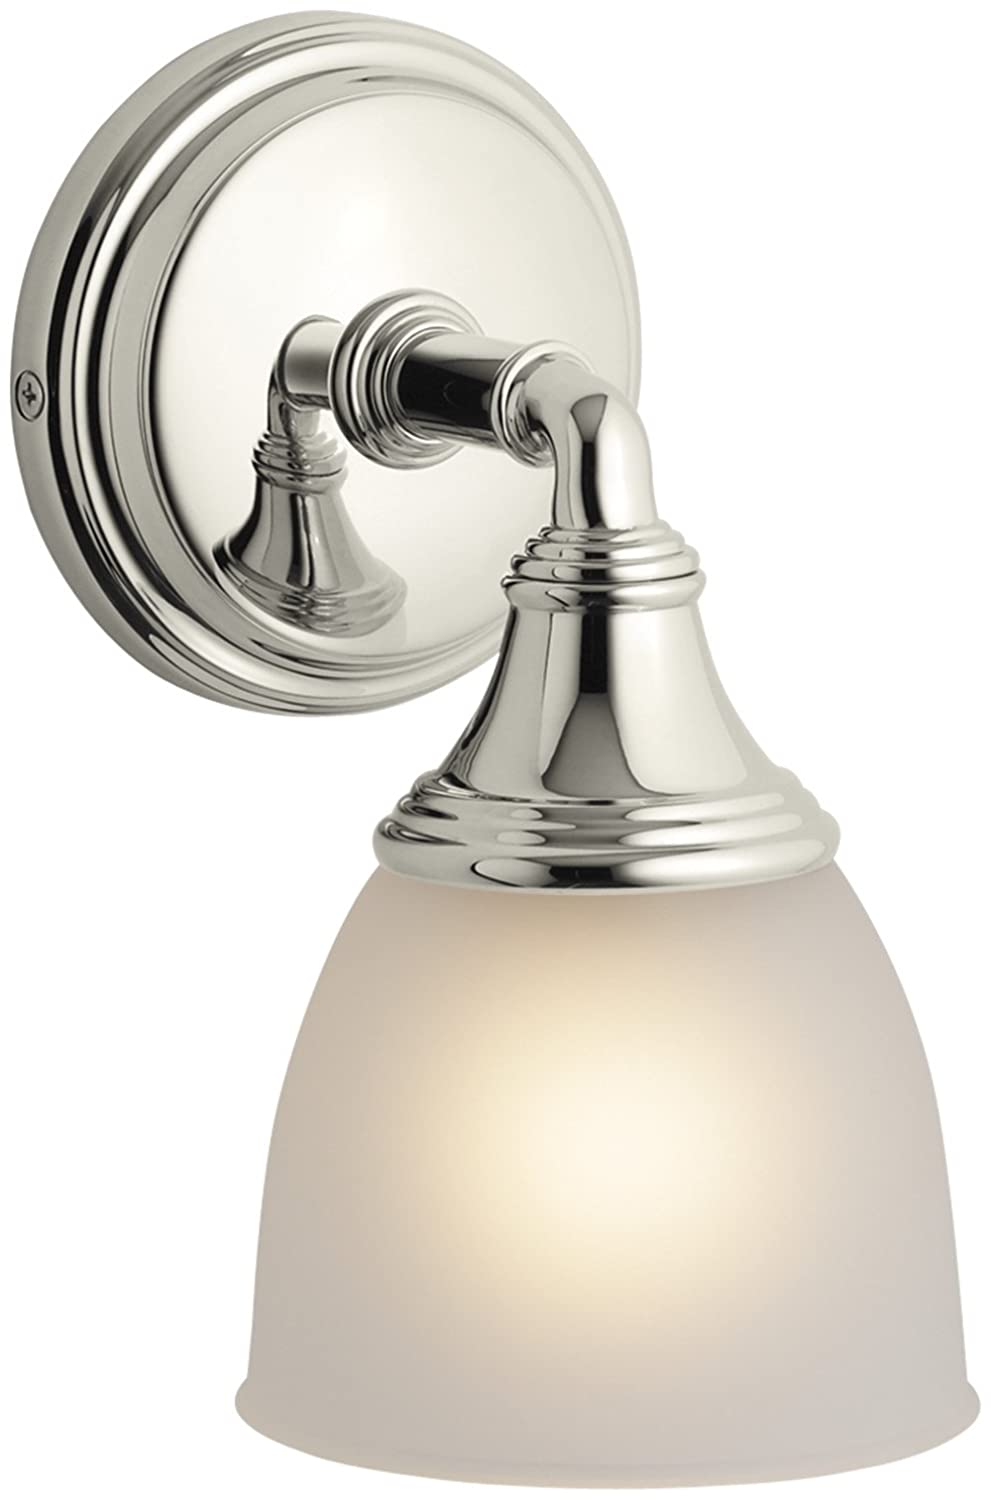 single lita nickel brand visual polished sconce cg with cryst comfort ah sku in